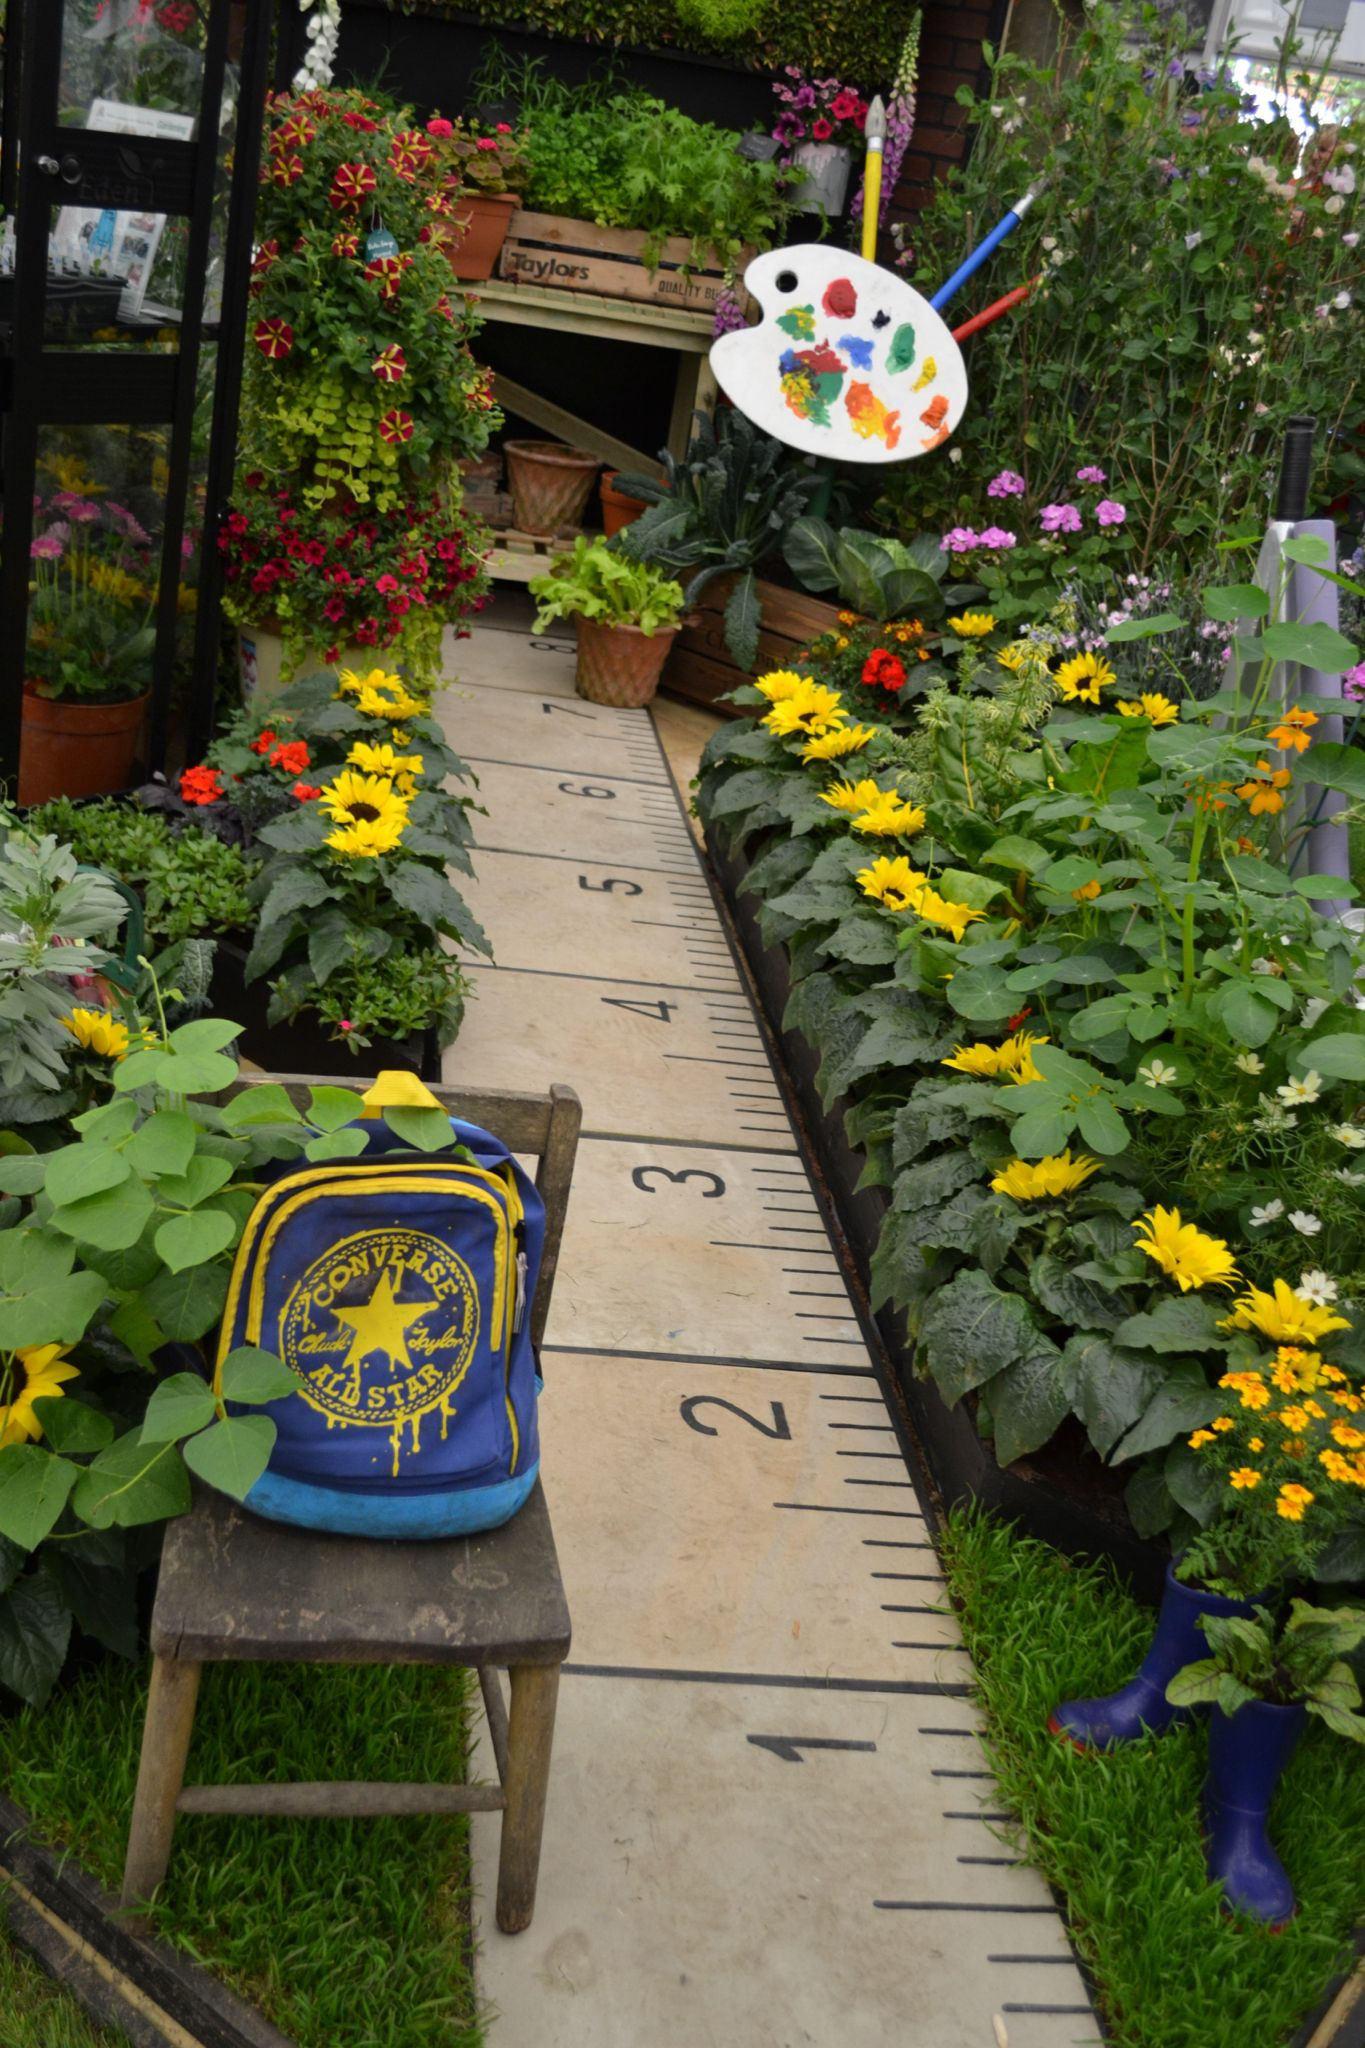 Ruler footpath lined with sunflowers ideal for kids garden or  school also